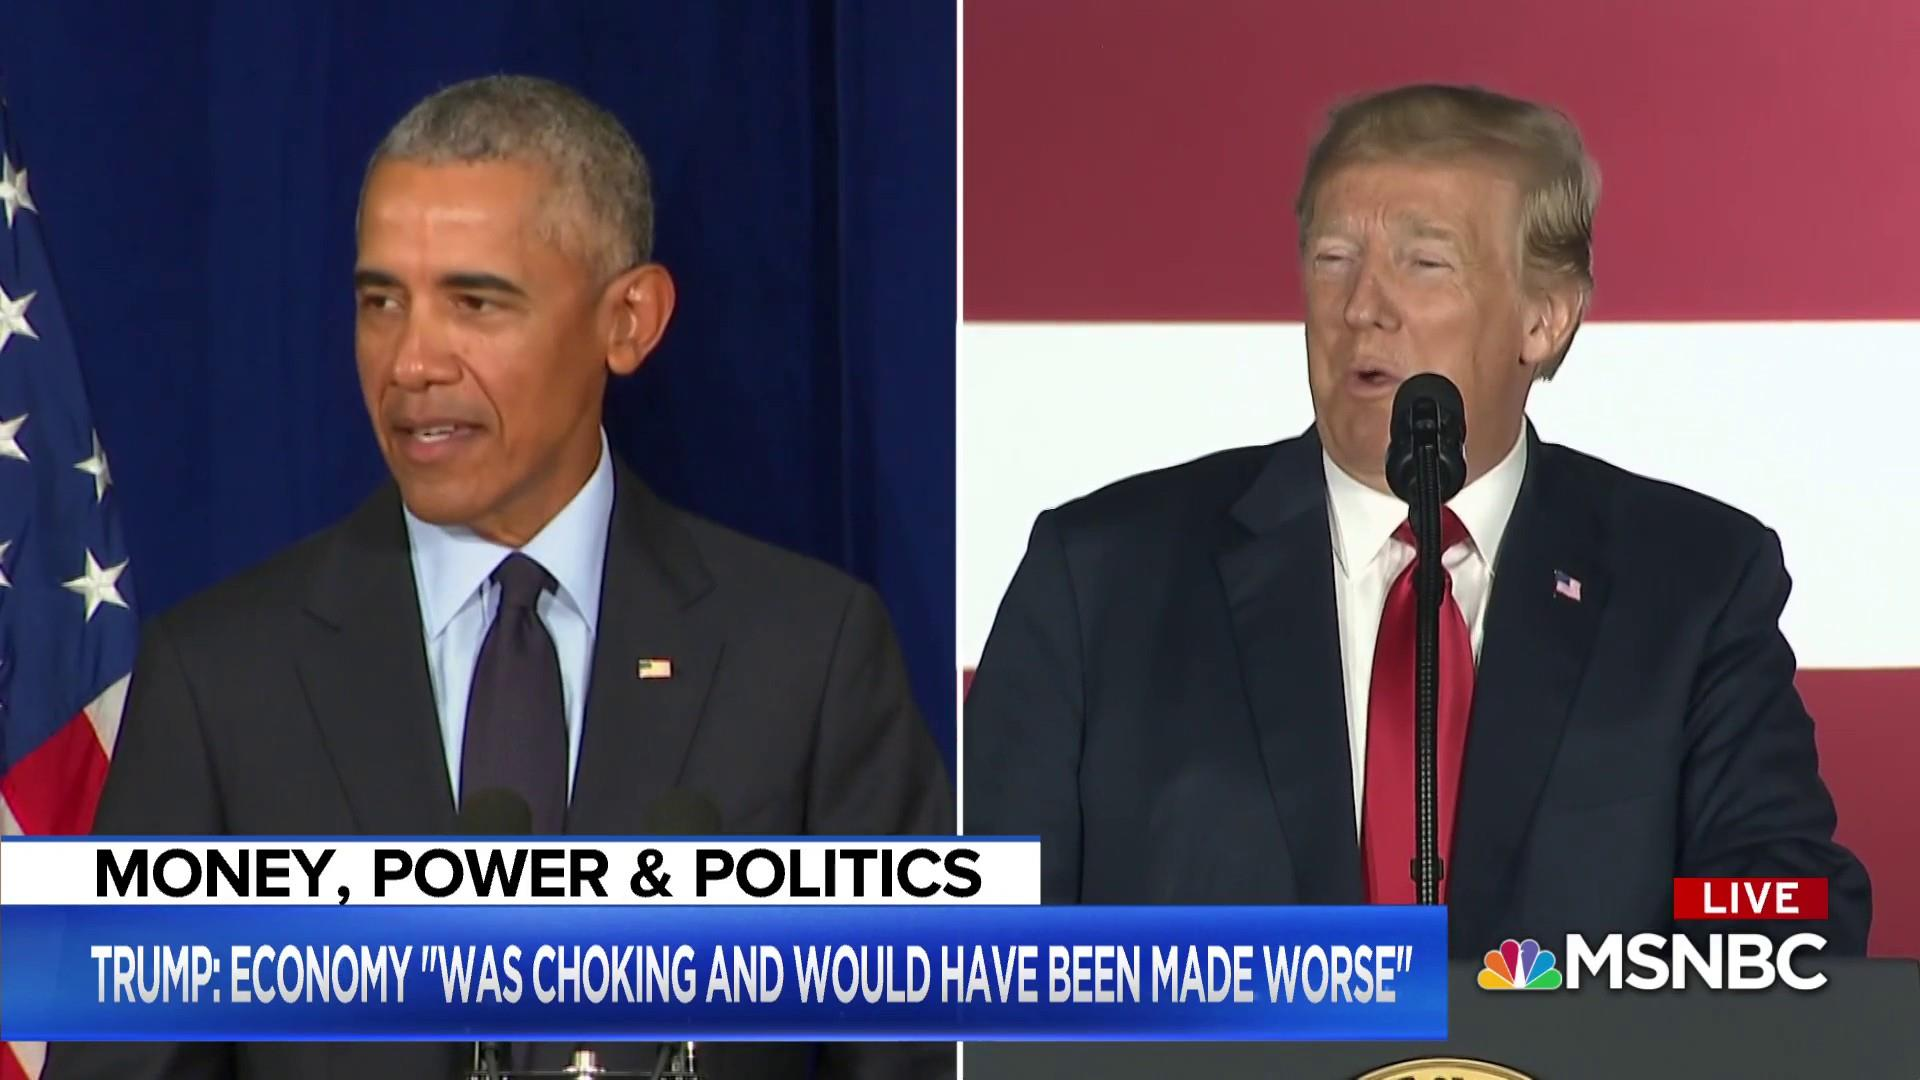 Trump vs. Obama: who gets credit for the booming economy?